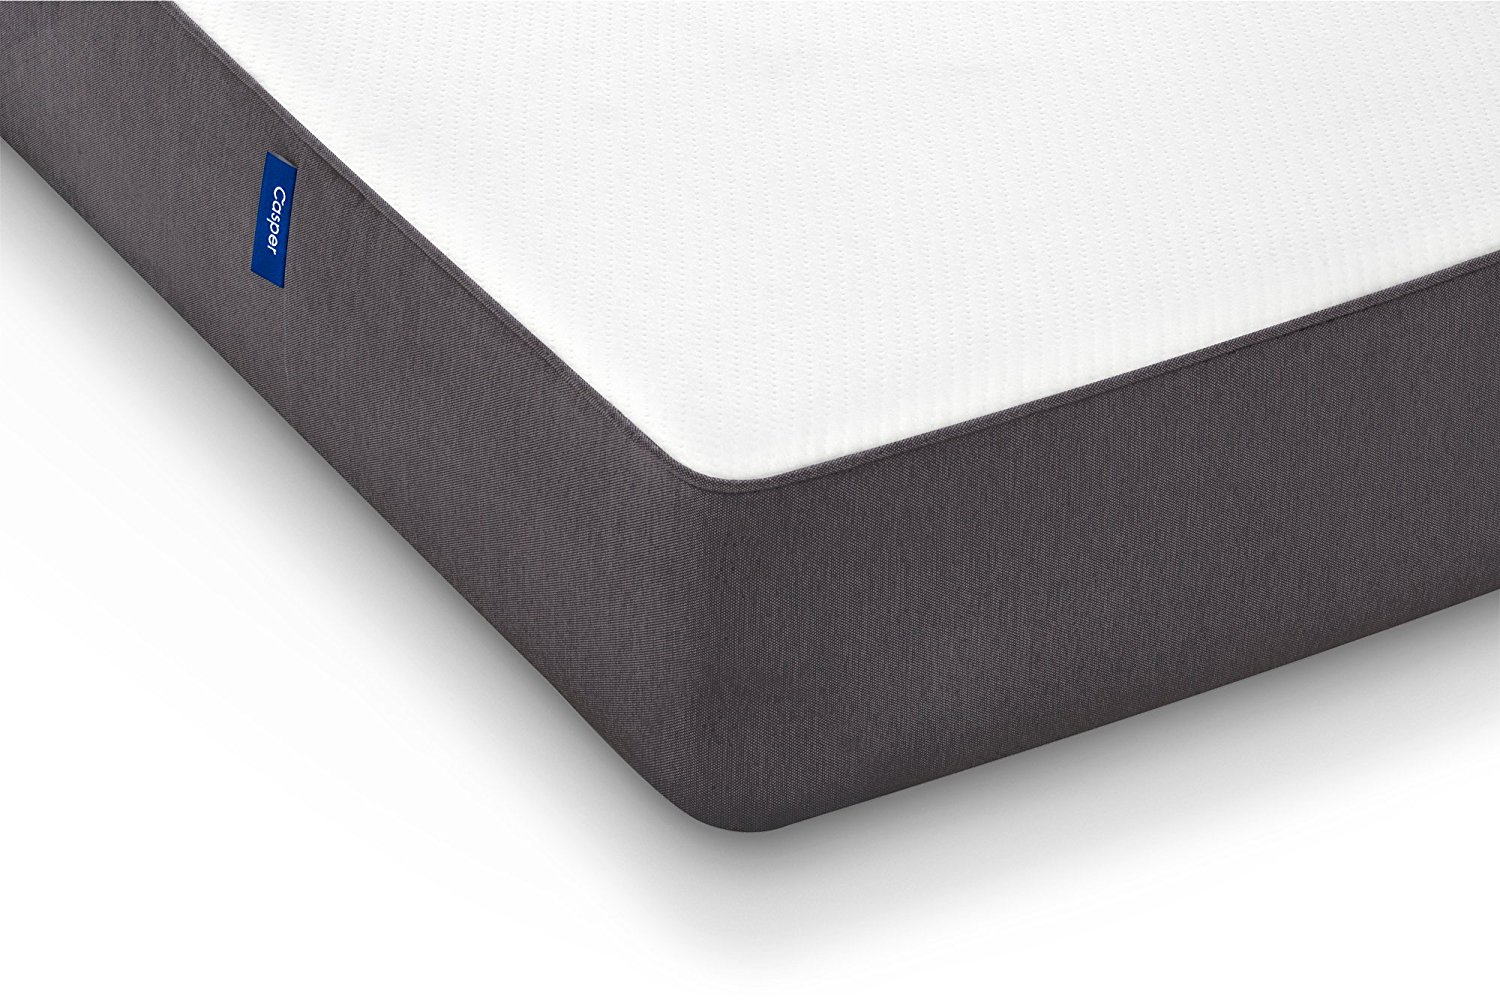 Best Mattress for Side Sleepers with Back pain - Casper Sleep Mattress